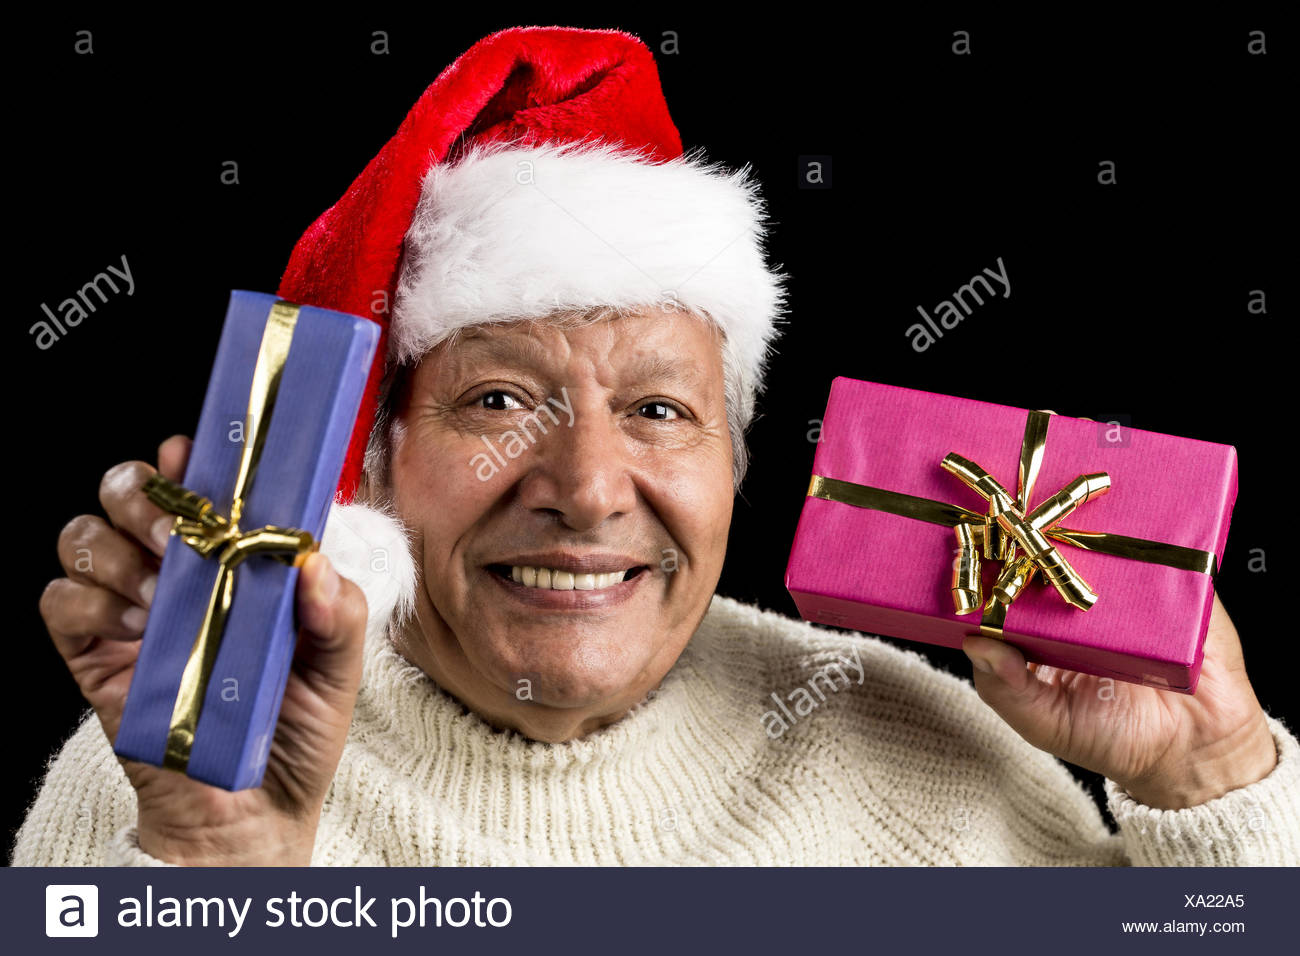 Lighthearted, Smiling Old Man Offering Two Gifts - Stock Image